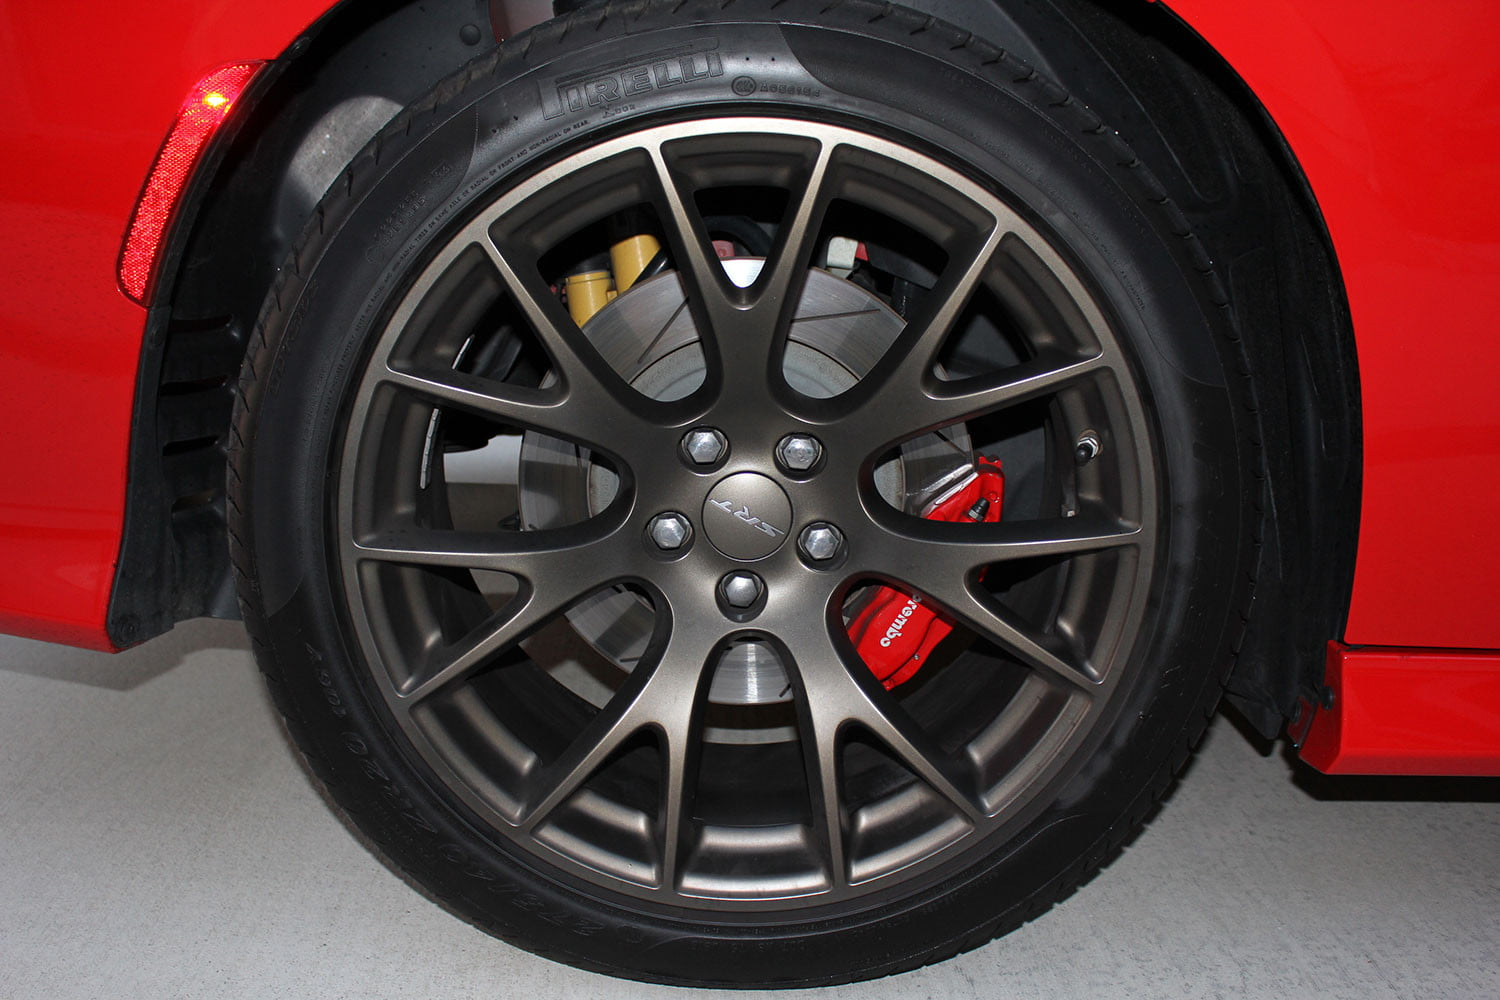 2015 Dodge Charger Srt Hellcat Tire Full